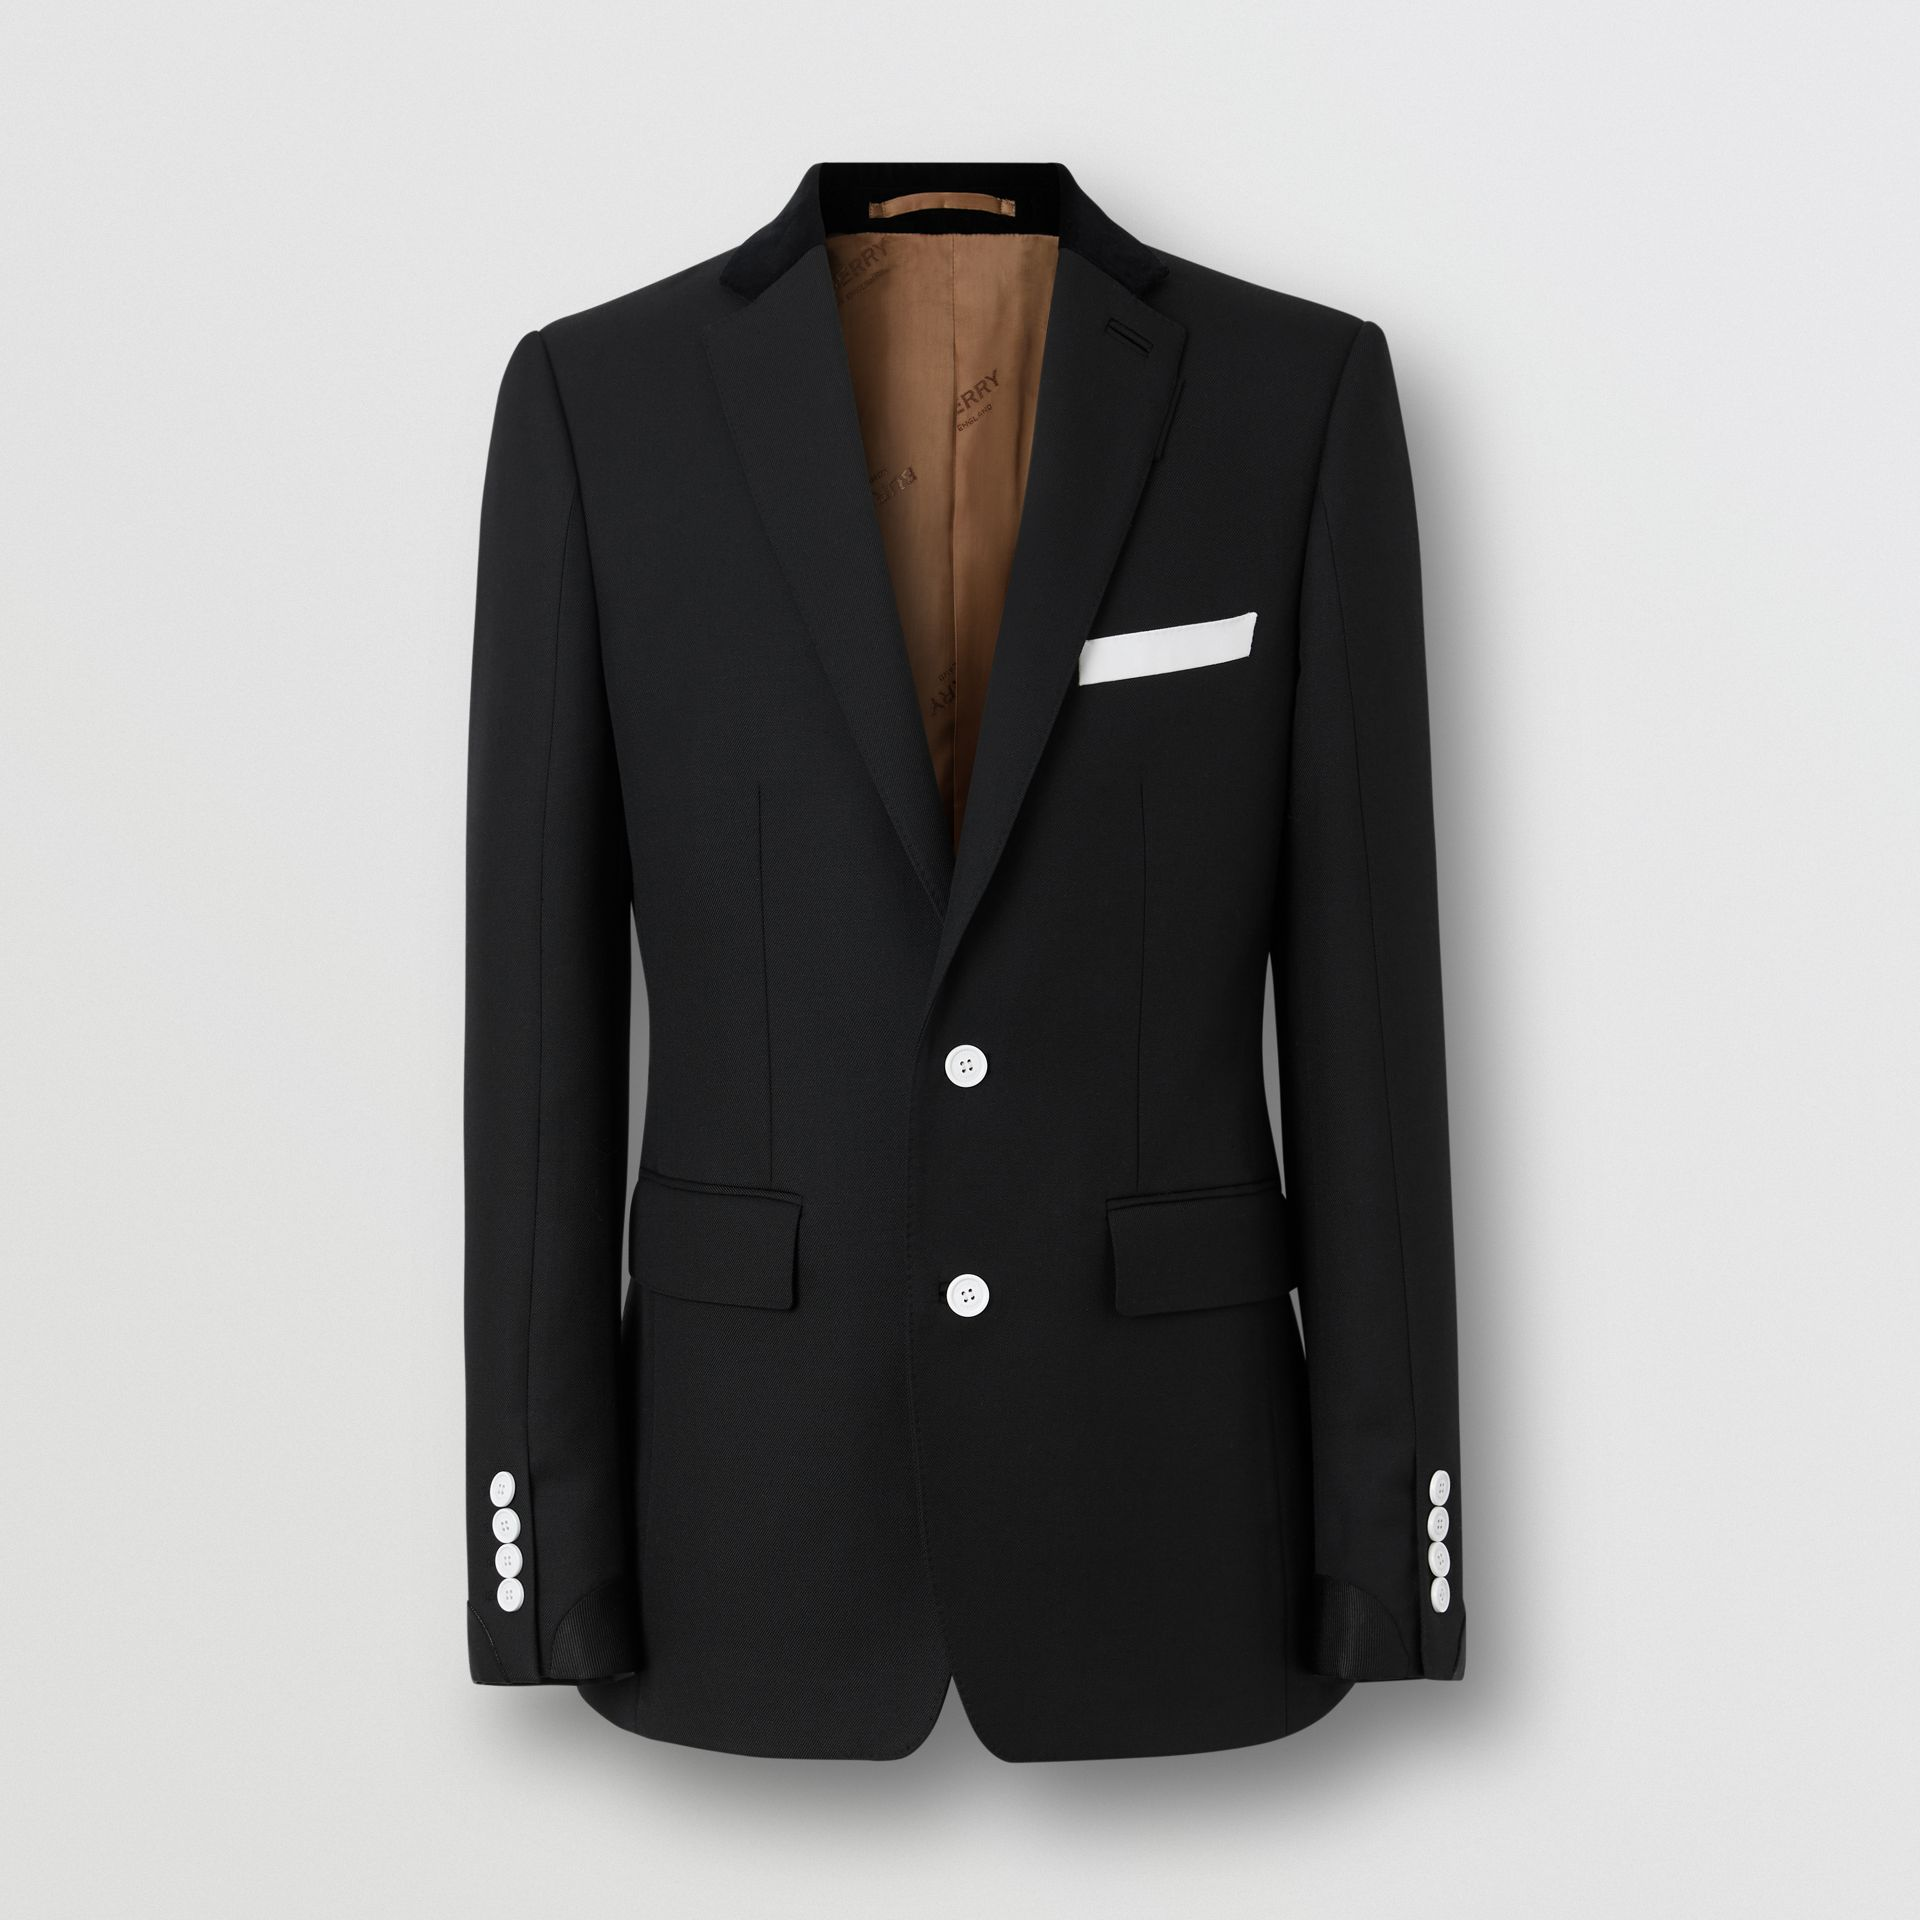 English Fit Velvet Collar Wool Tailored Jacket in Black - Men | Burberry - gallery image 3